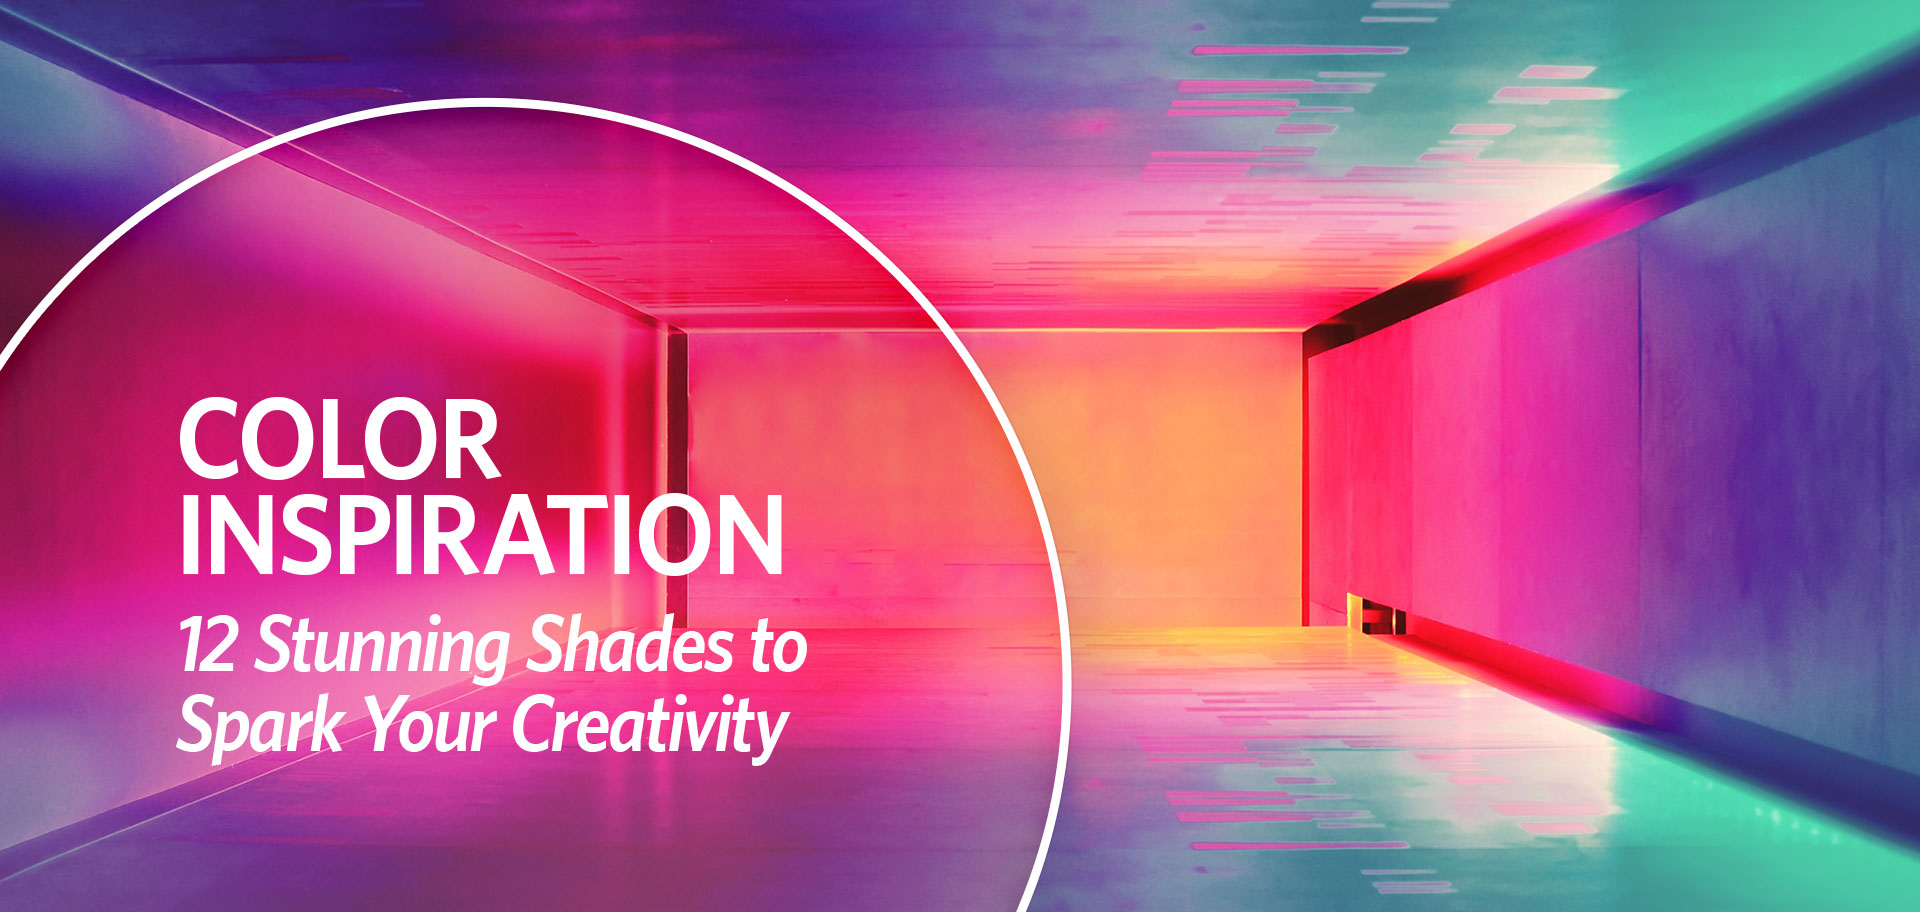 color inspiration, color ideas, colors from nature, RGB codes, HEX codes, Kettle Fire Creative blog color inspiration Color Inspiration: 12 Stunning Shades to Spark Your Creativity color inspiration 1 fi